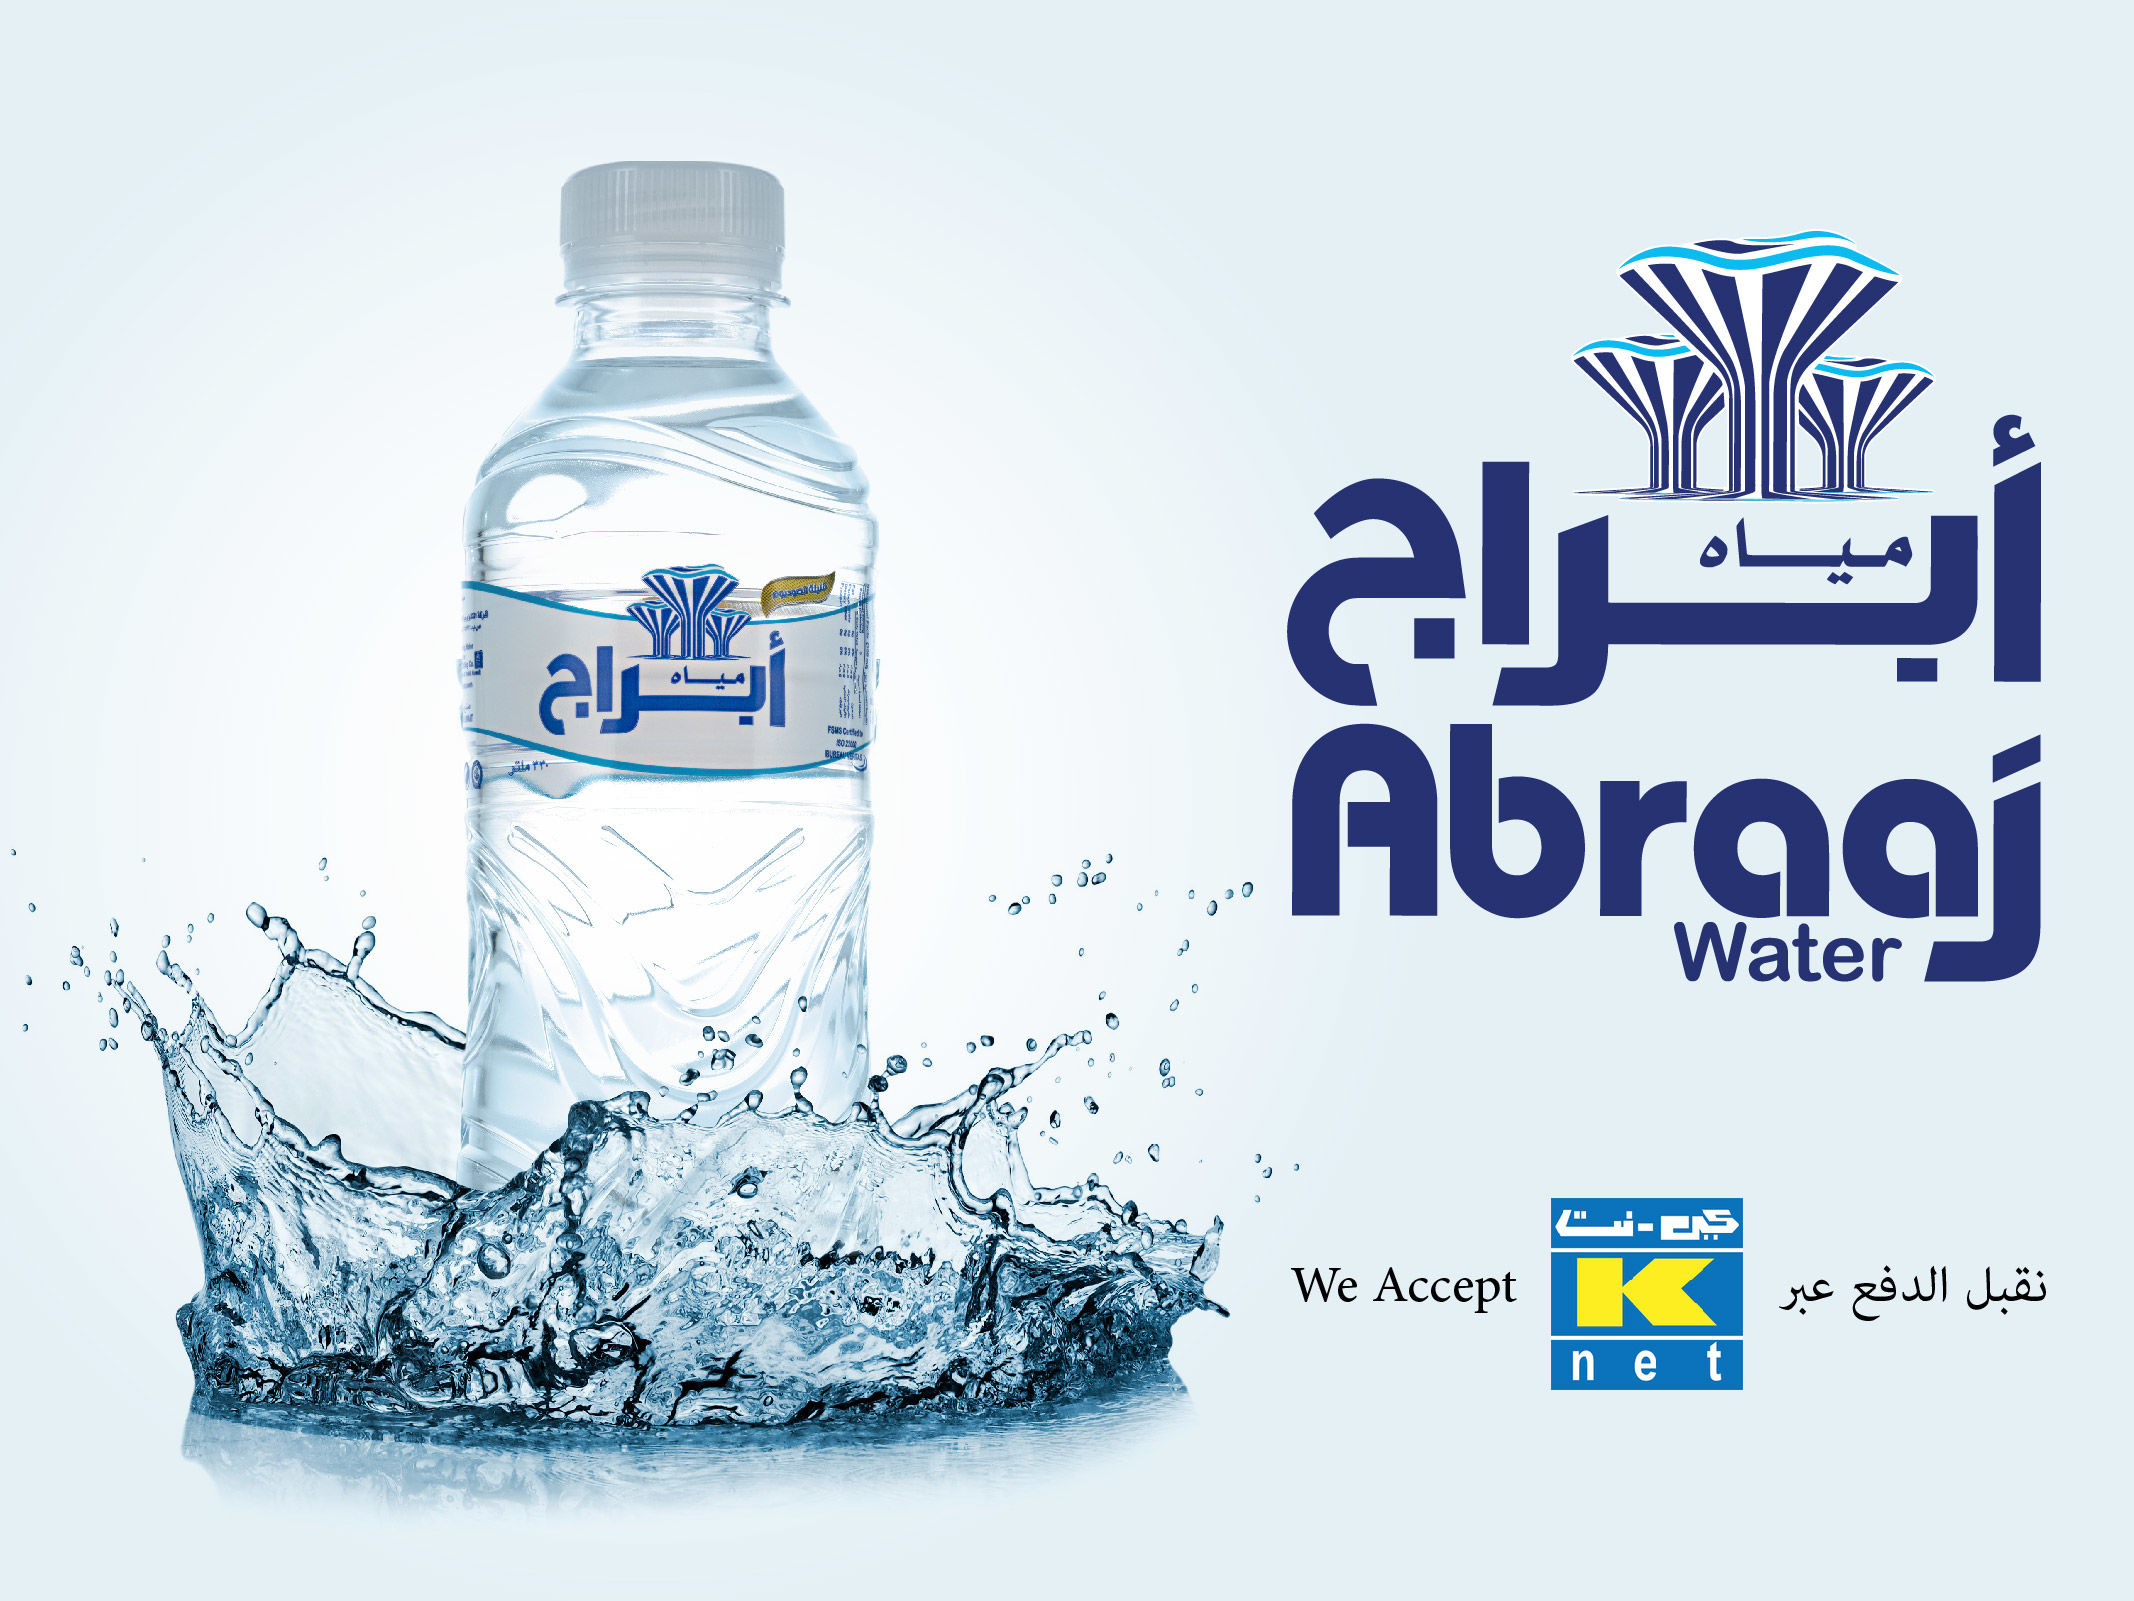 Abraaj Water header